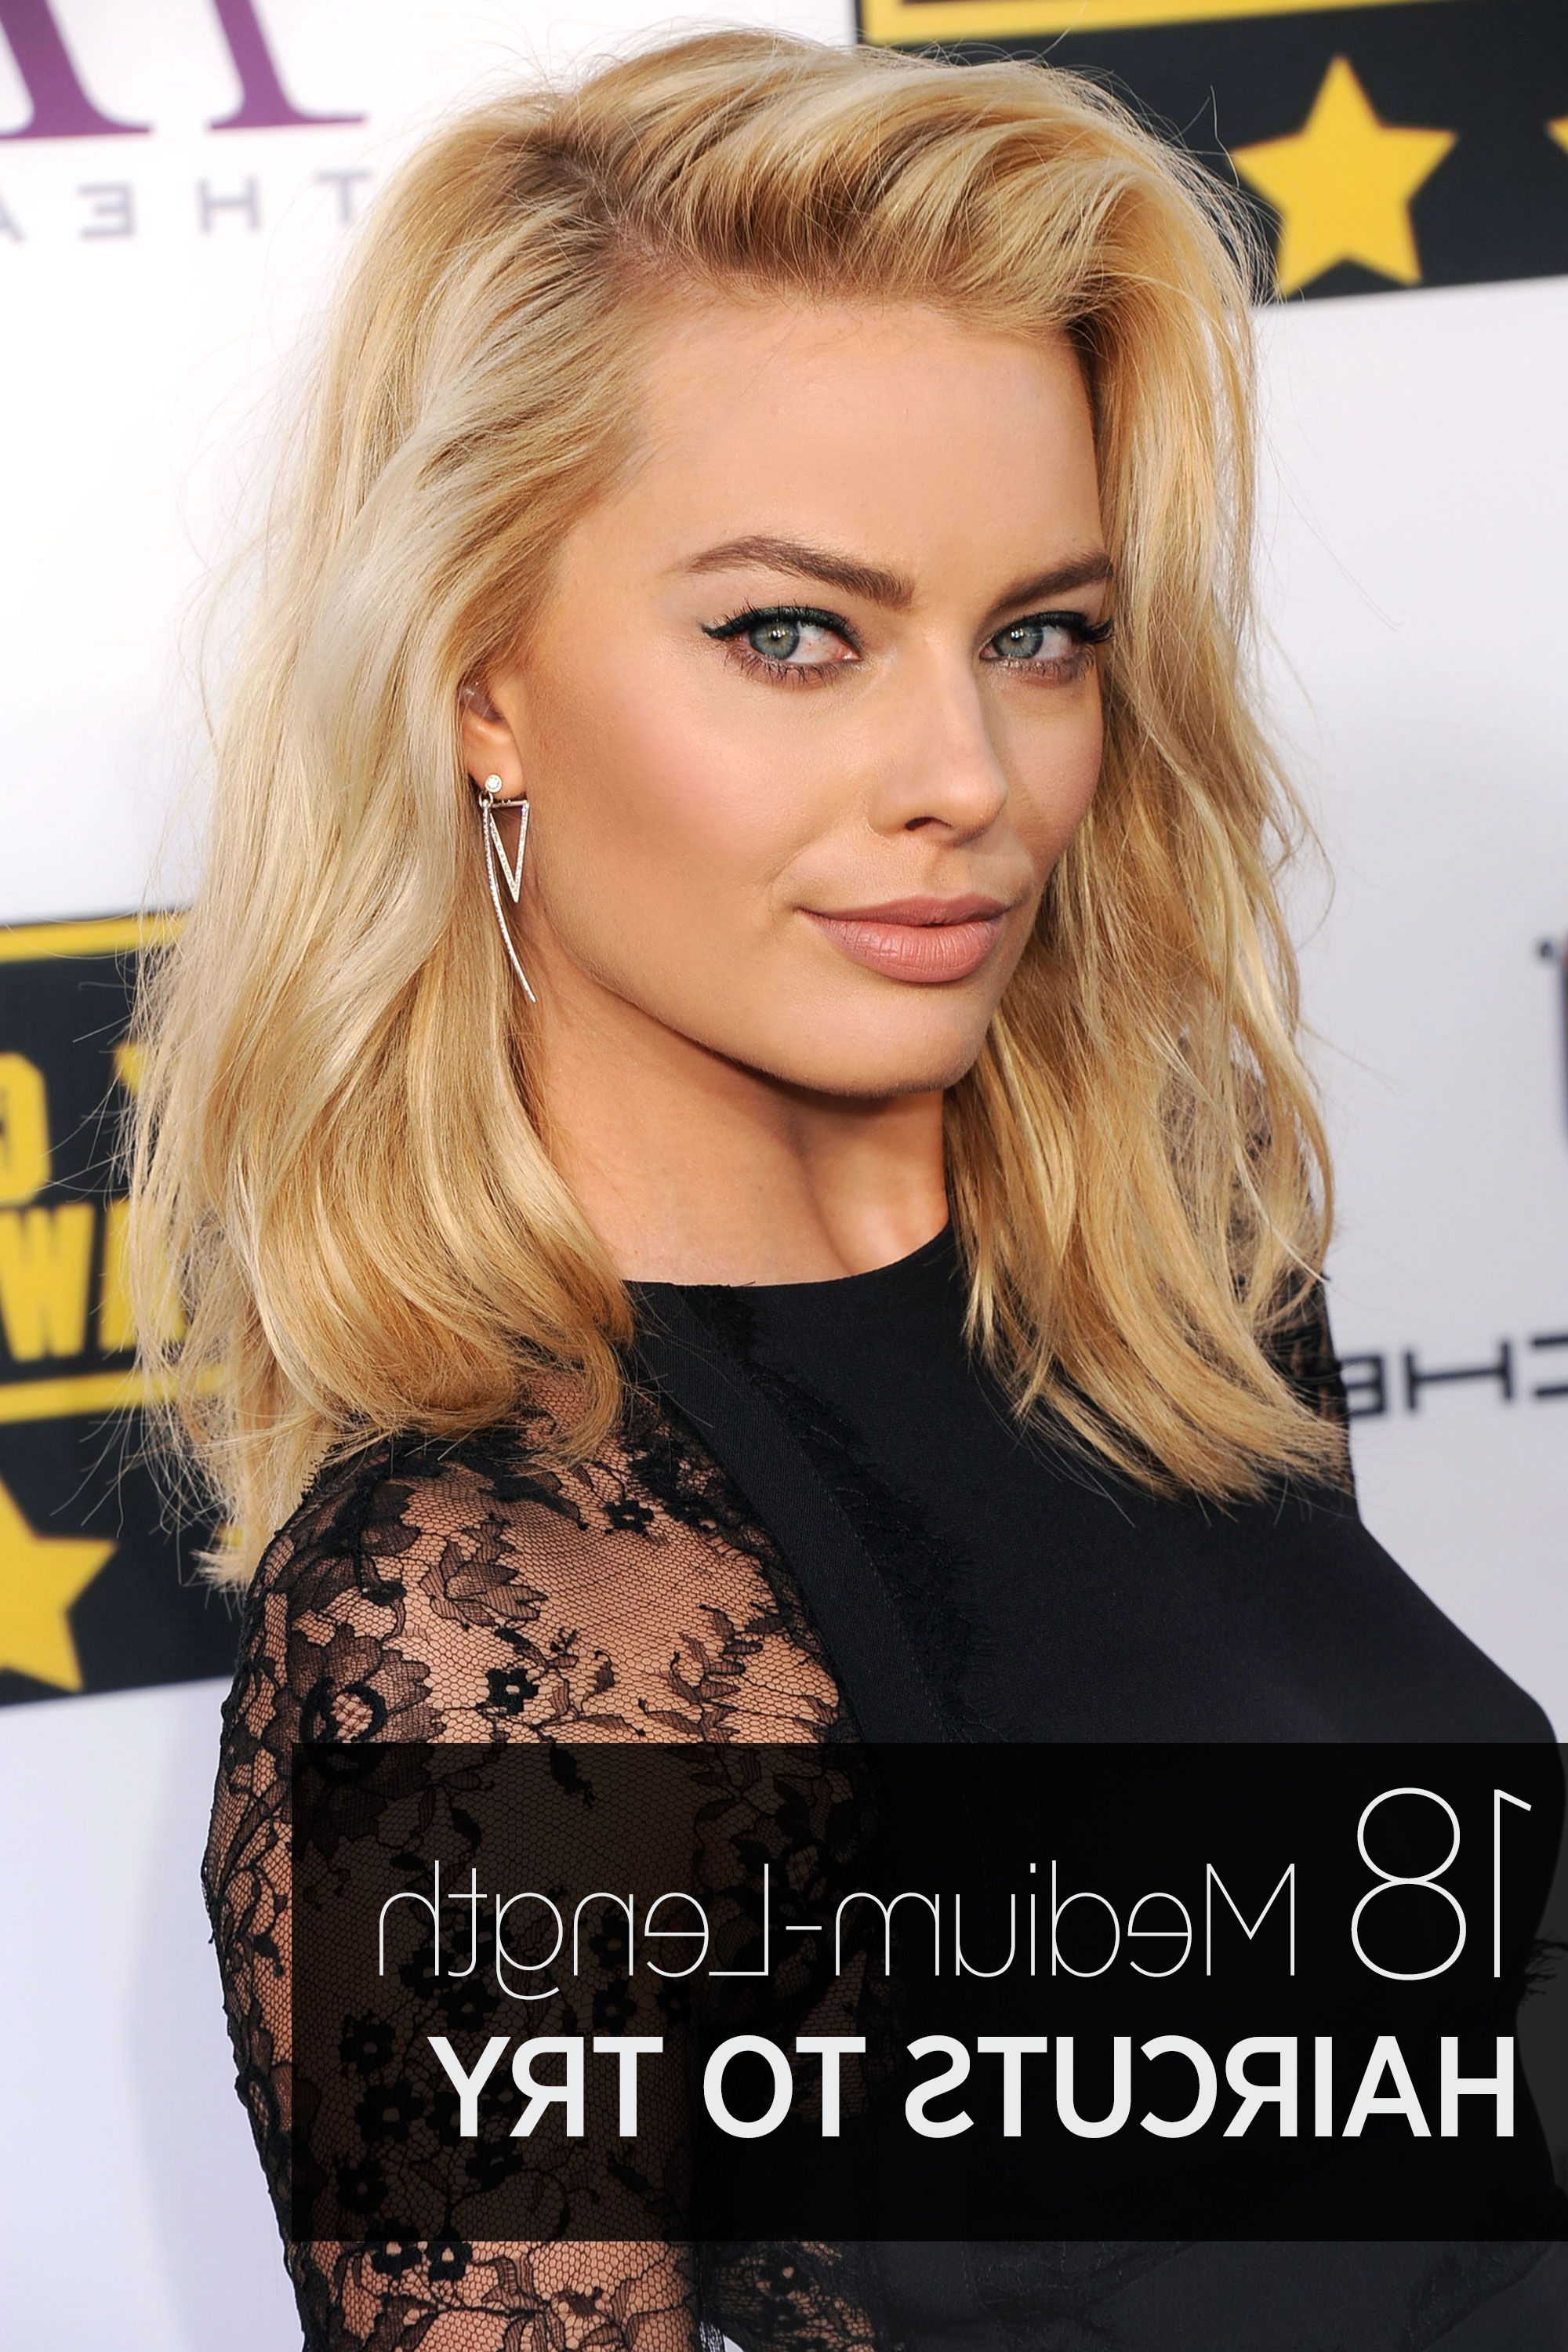 40 Best Medium Hairstyles – Celebrities With Shoulder Length Haircuts With Regard To Most Popular Middle Part And Medium Length Hairstyles (View 6 of 20)